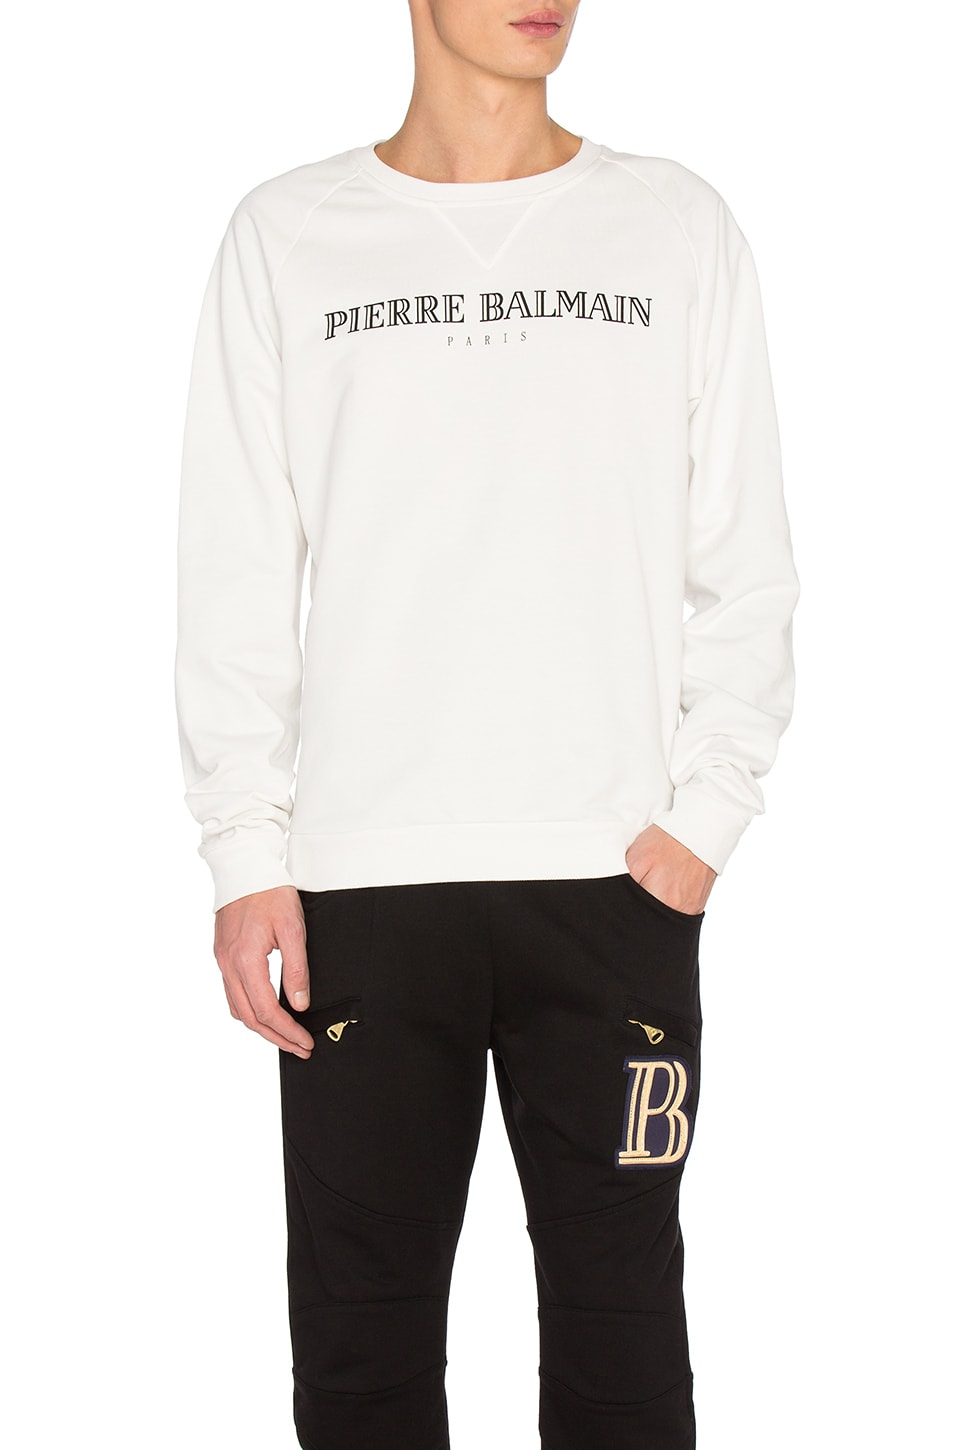 Sweatshirt by Pierre Balmain